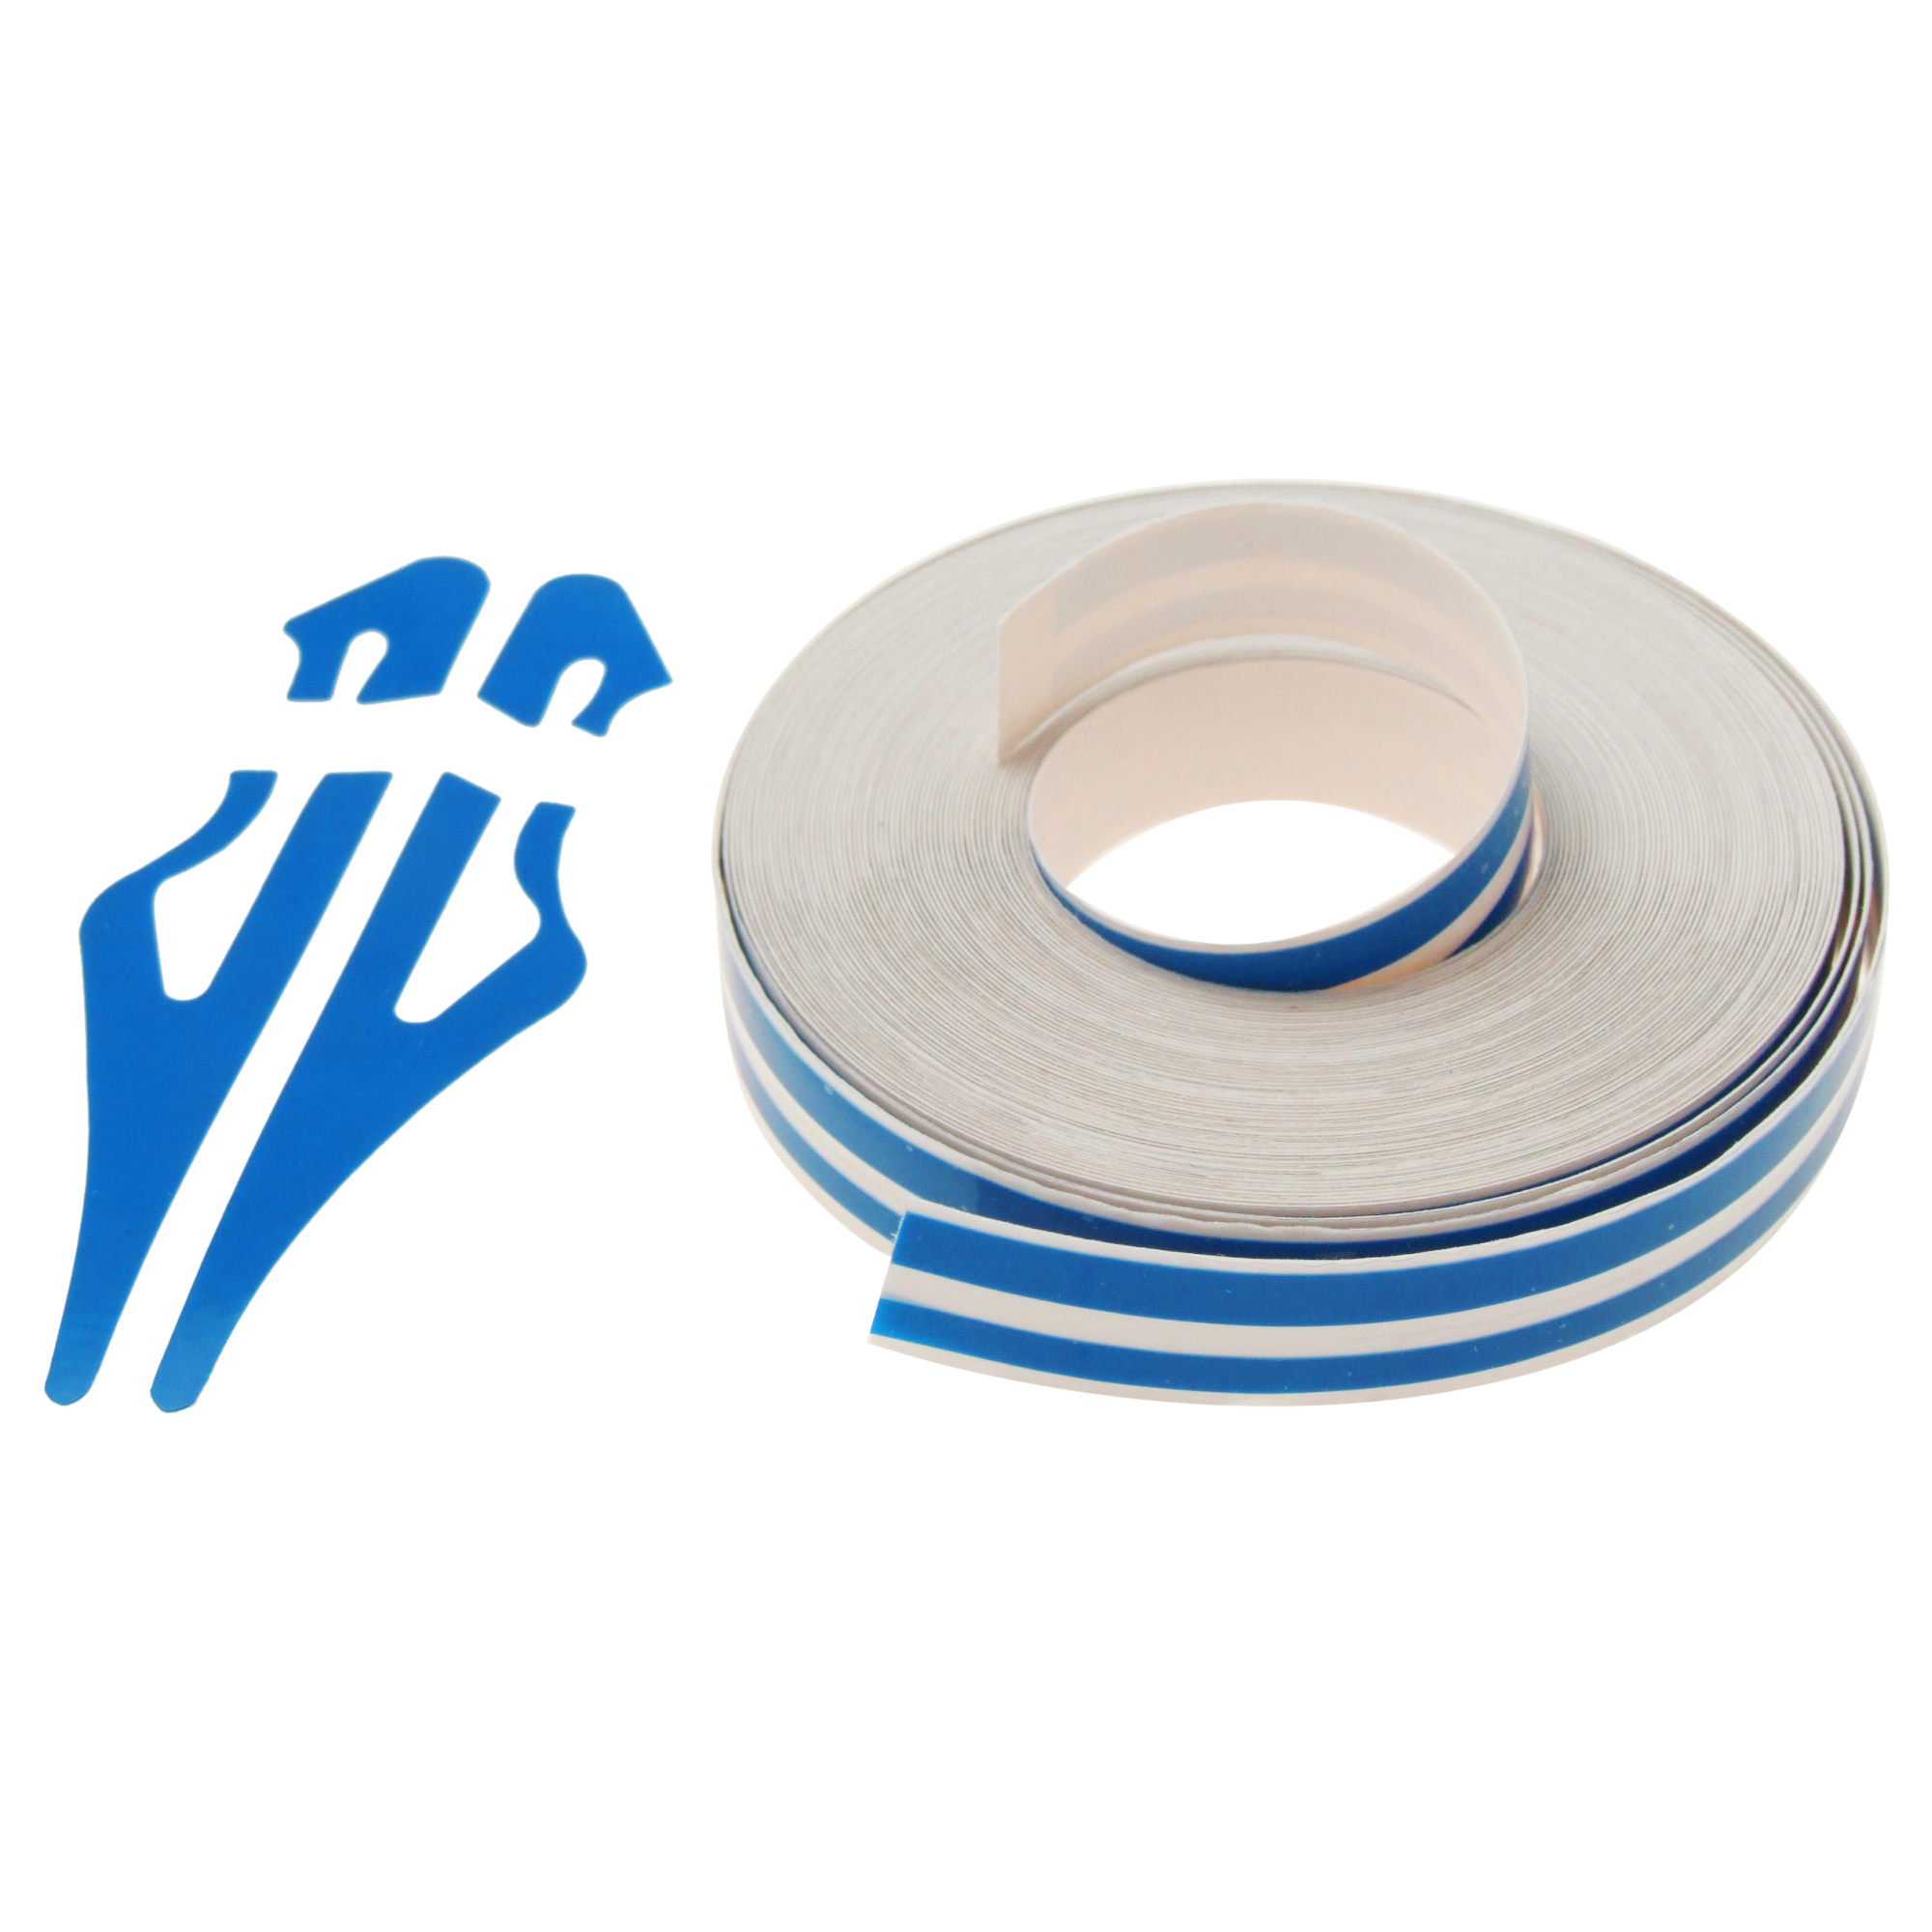 Blue Car Auto Boat Truck Stripe/ Adhesive Striping Tape Sticker W12 x L9800mm